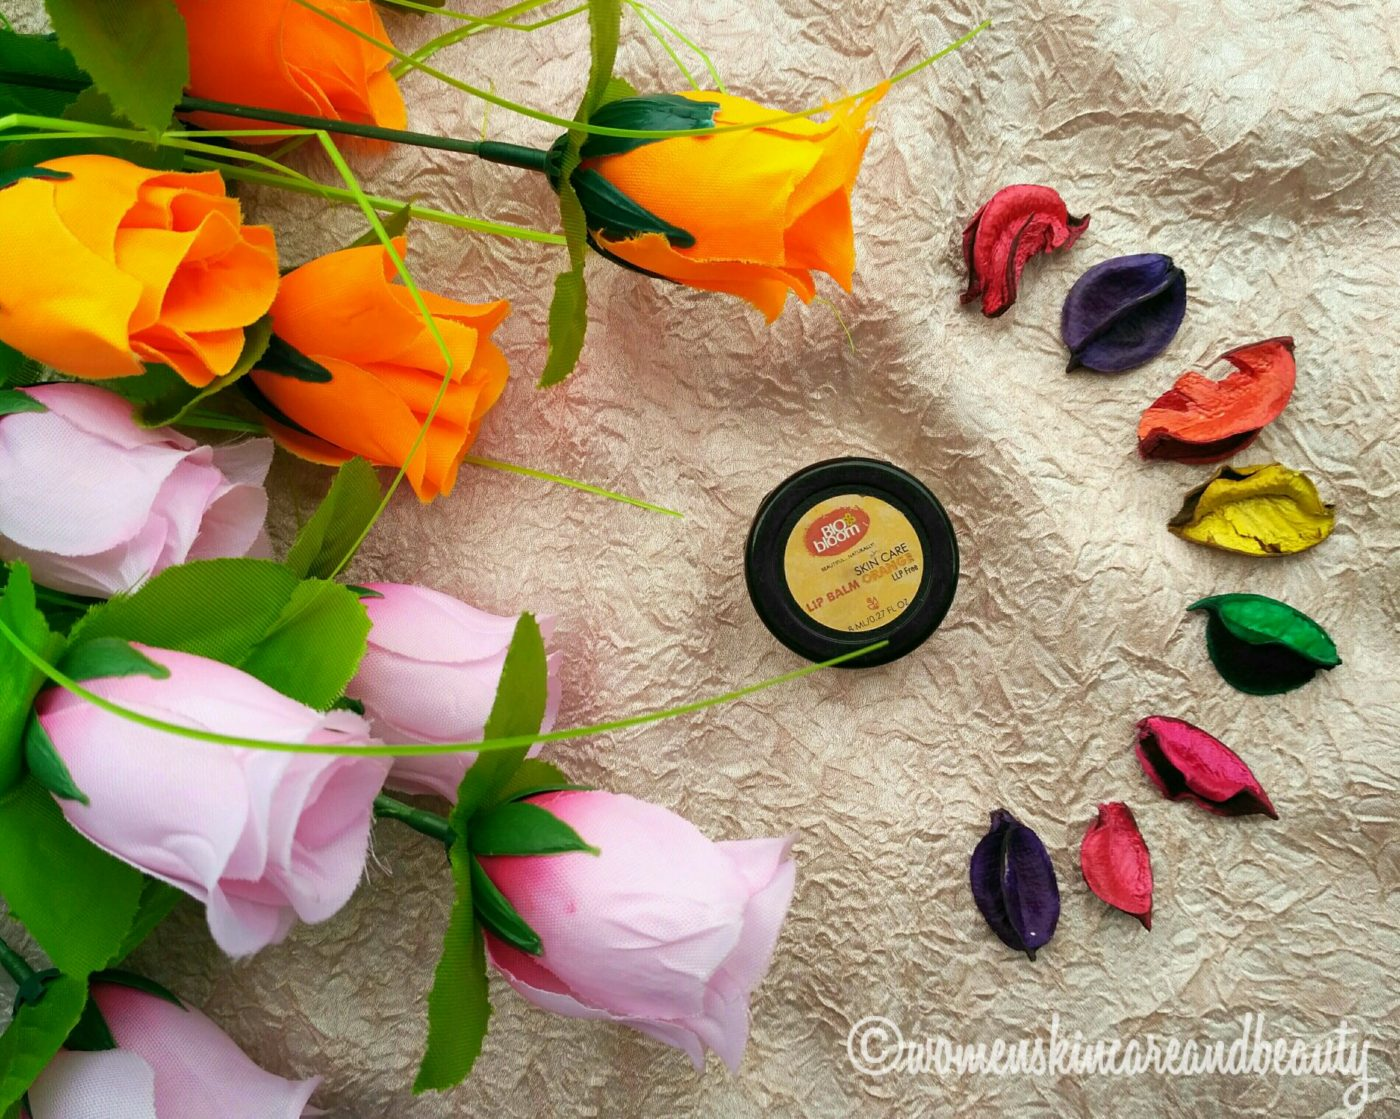 Bio Bloom Orange Lip Balm